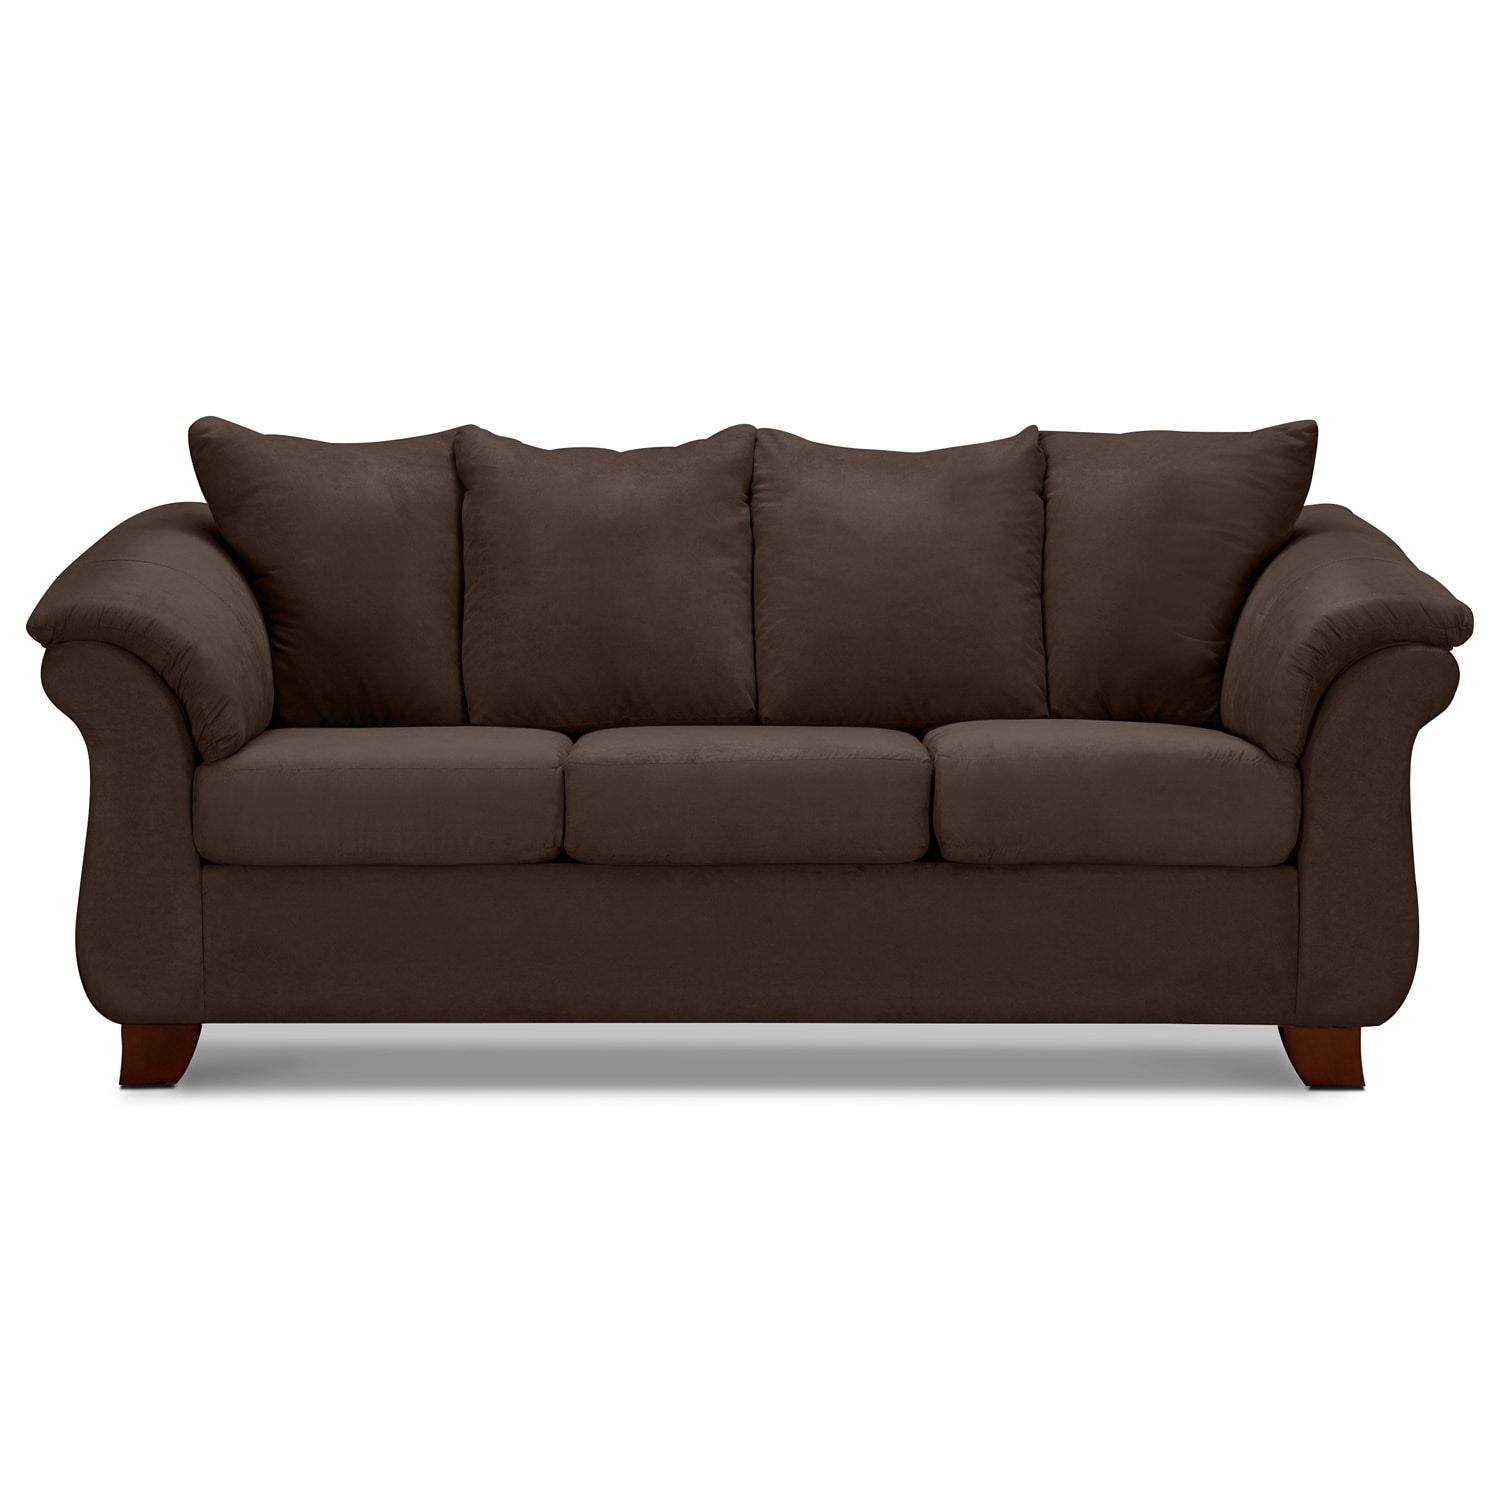 Adrian sofa chocolate value city furniture for Sofa sofa company